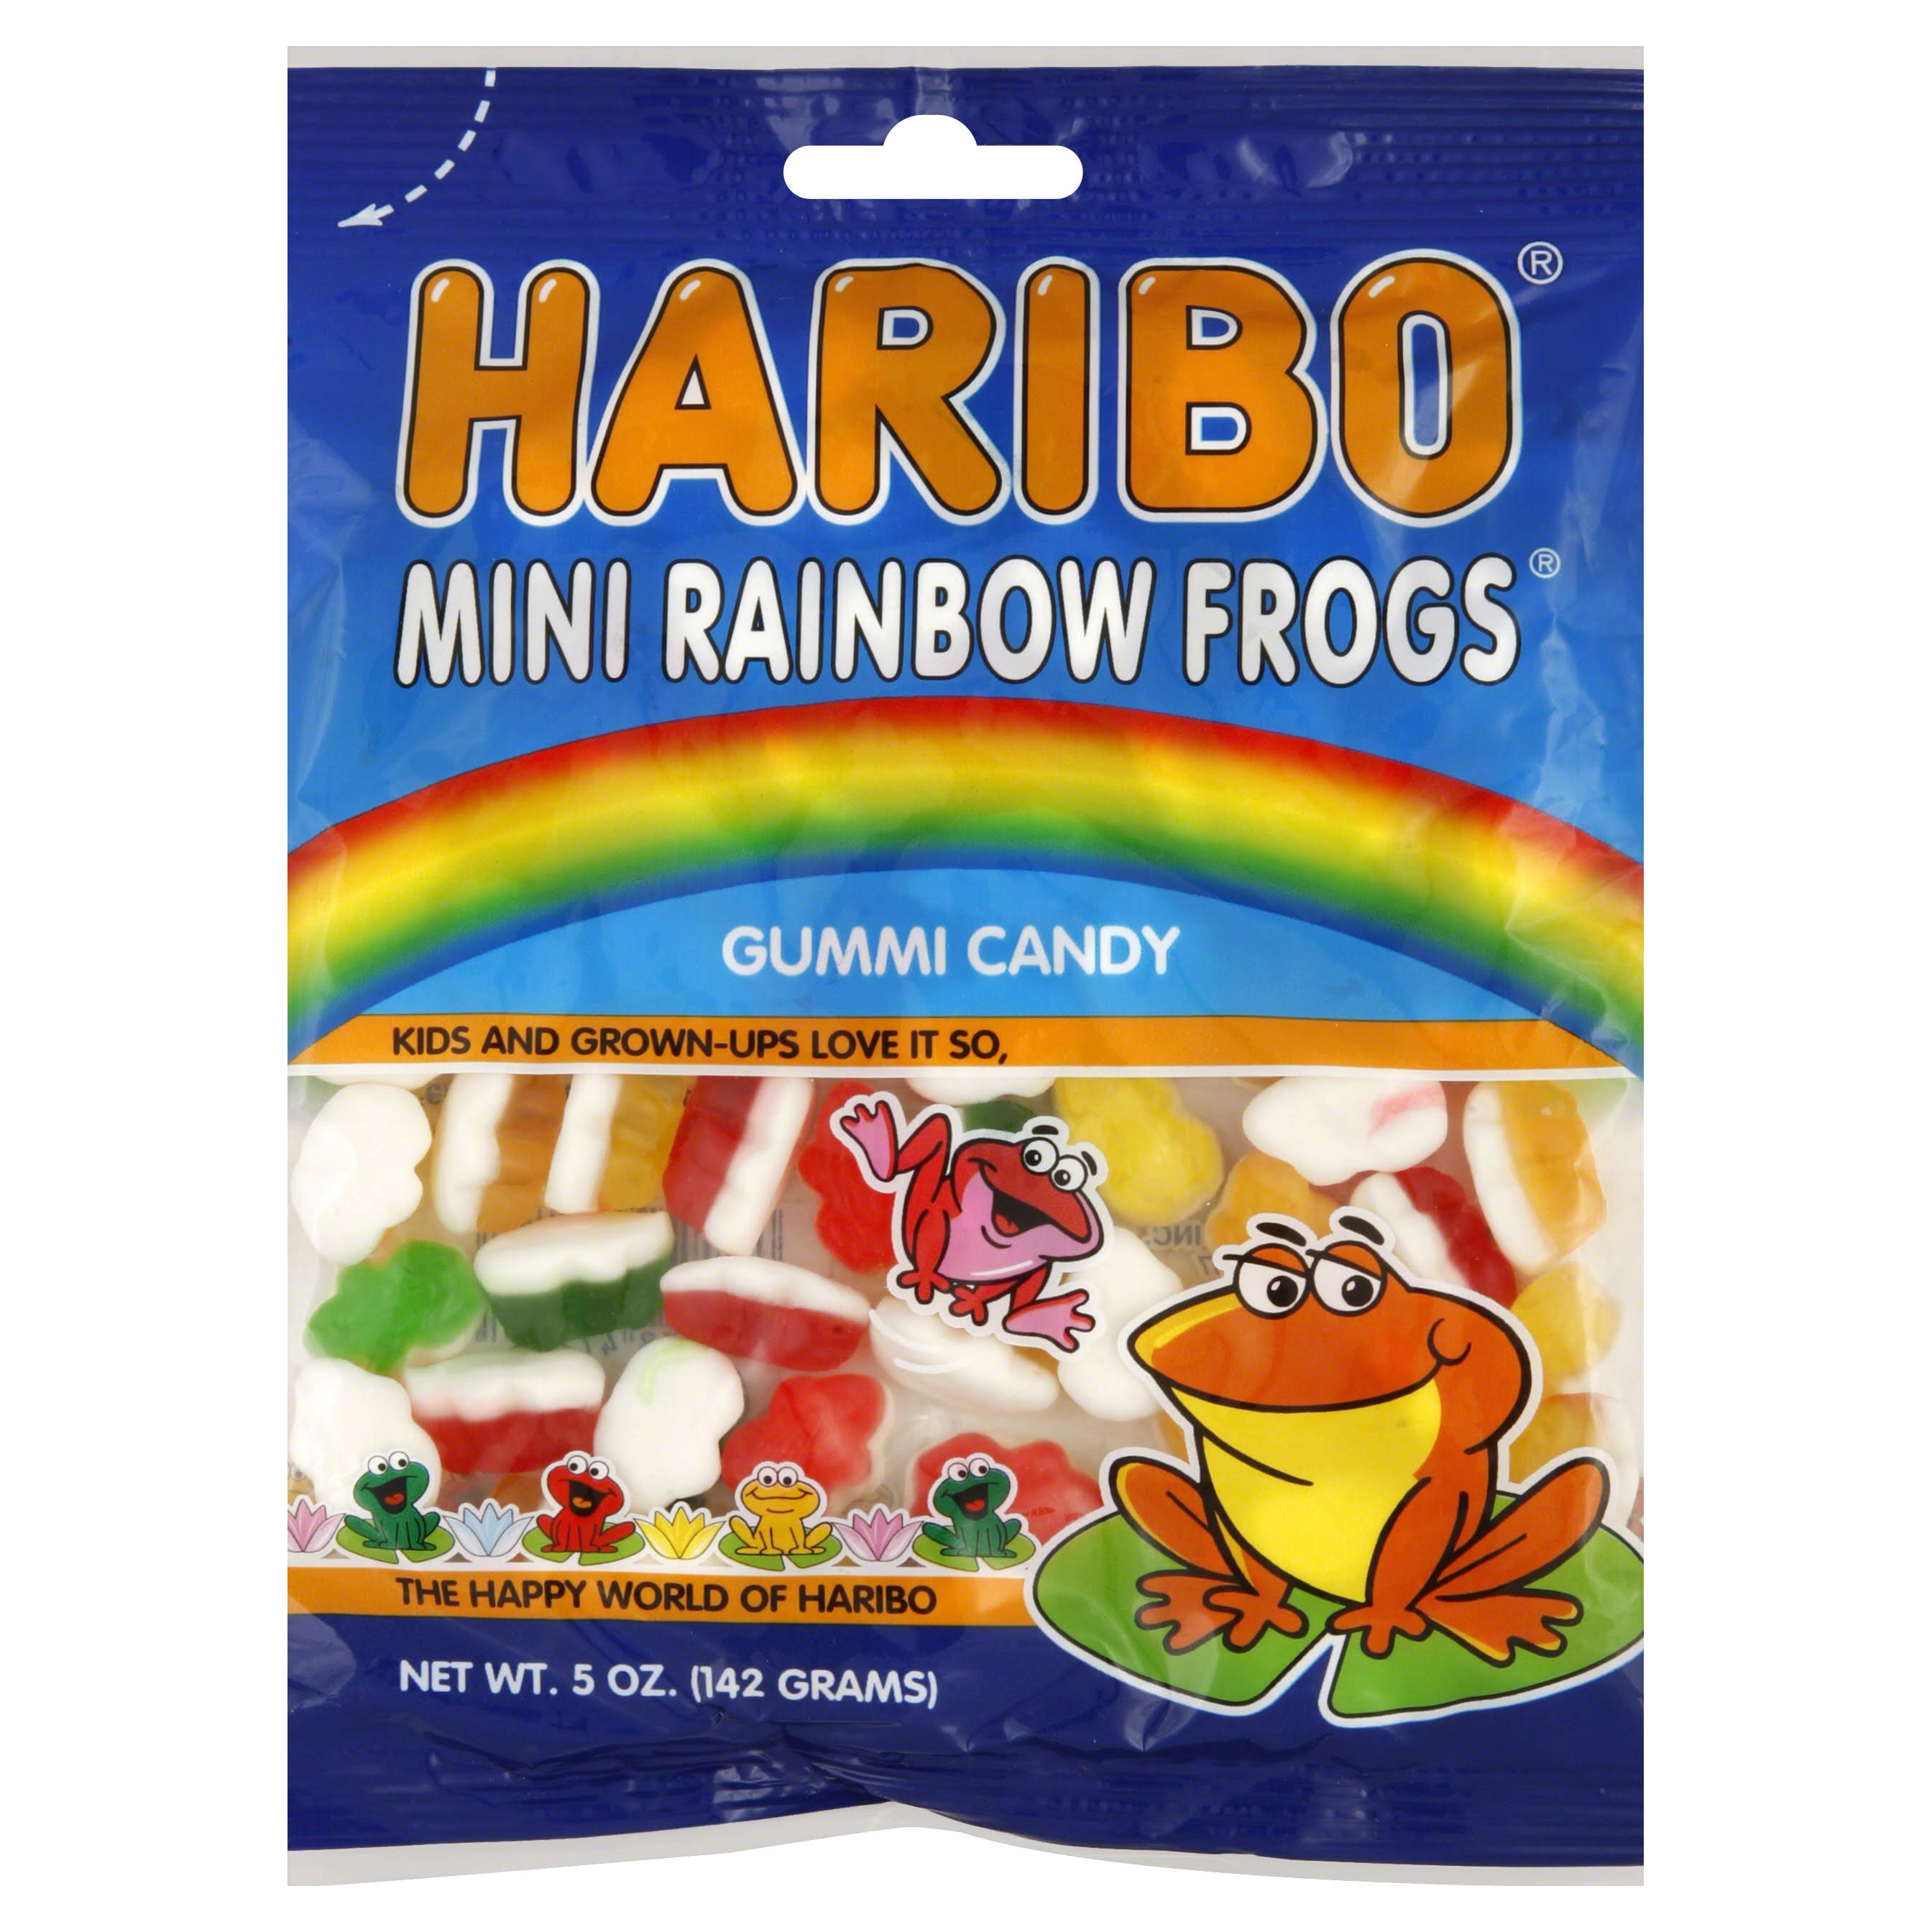 Haribo Mini Rainbow Frogs Gummi Candy - 5oz